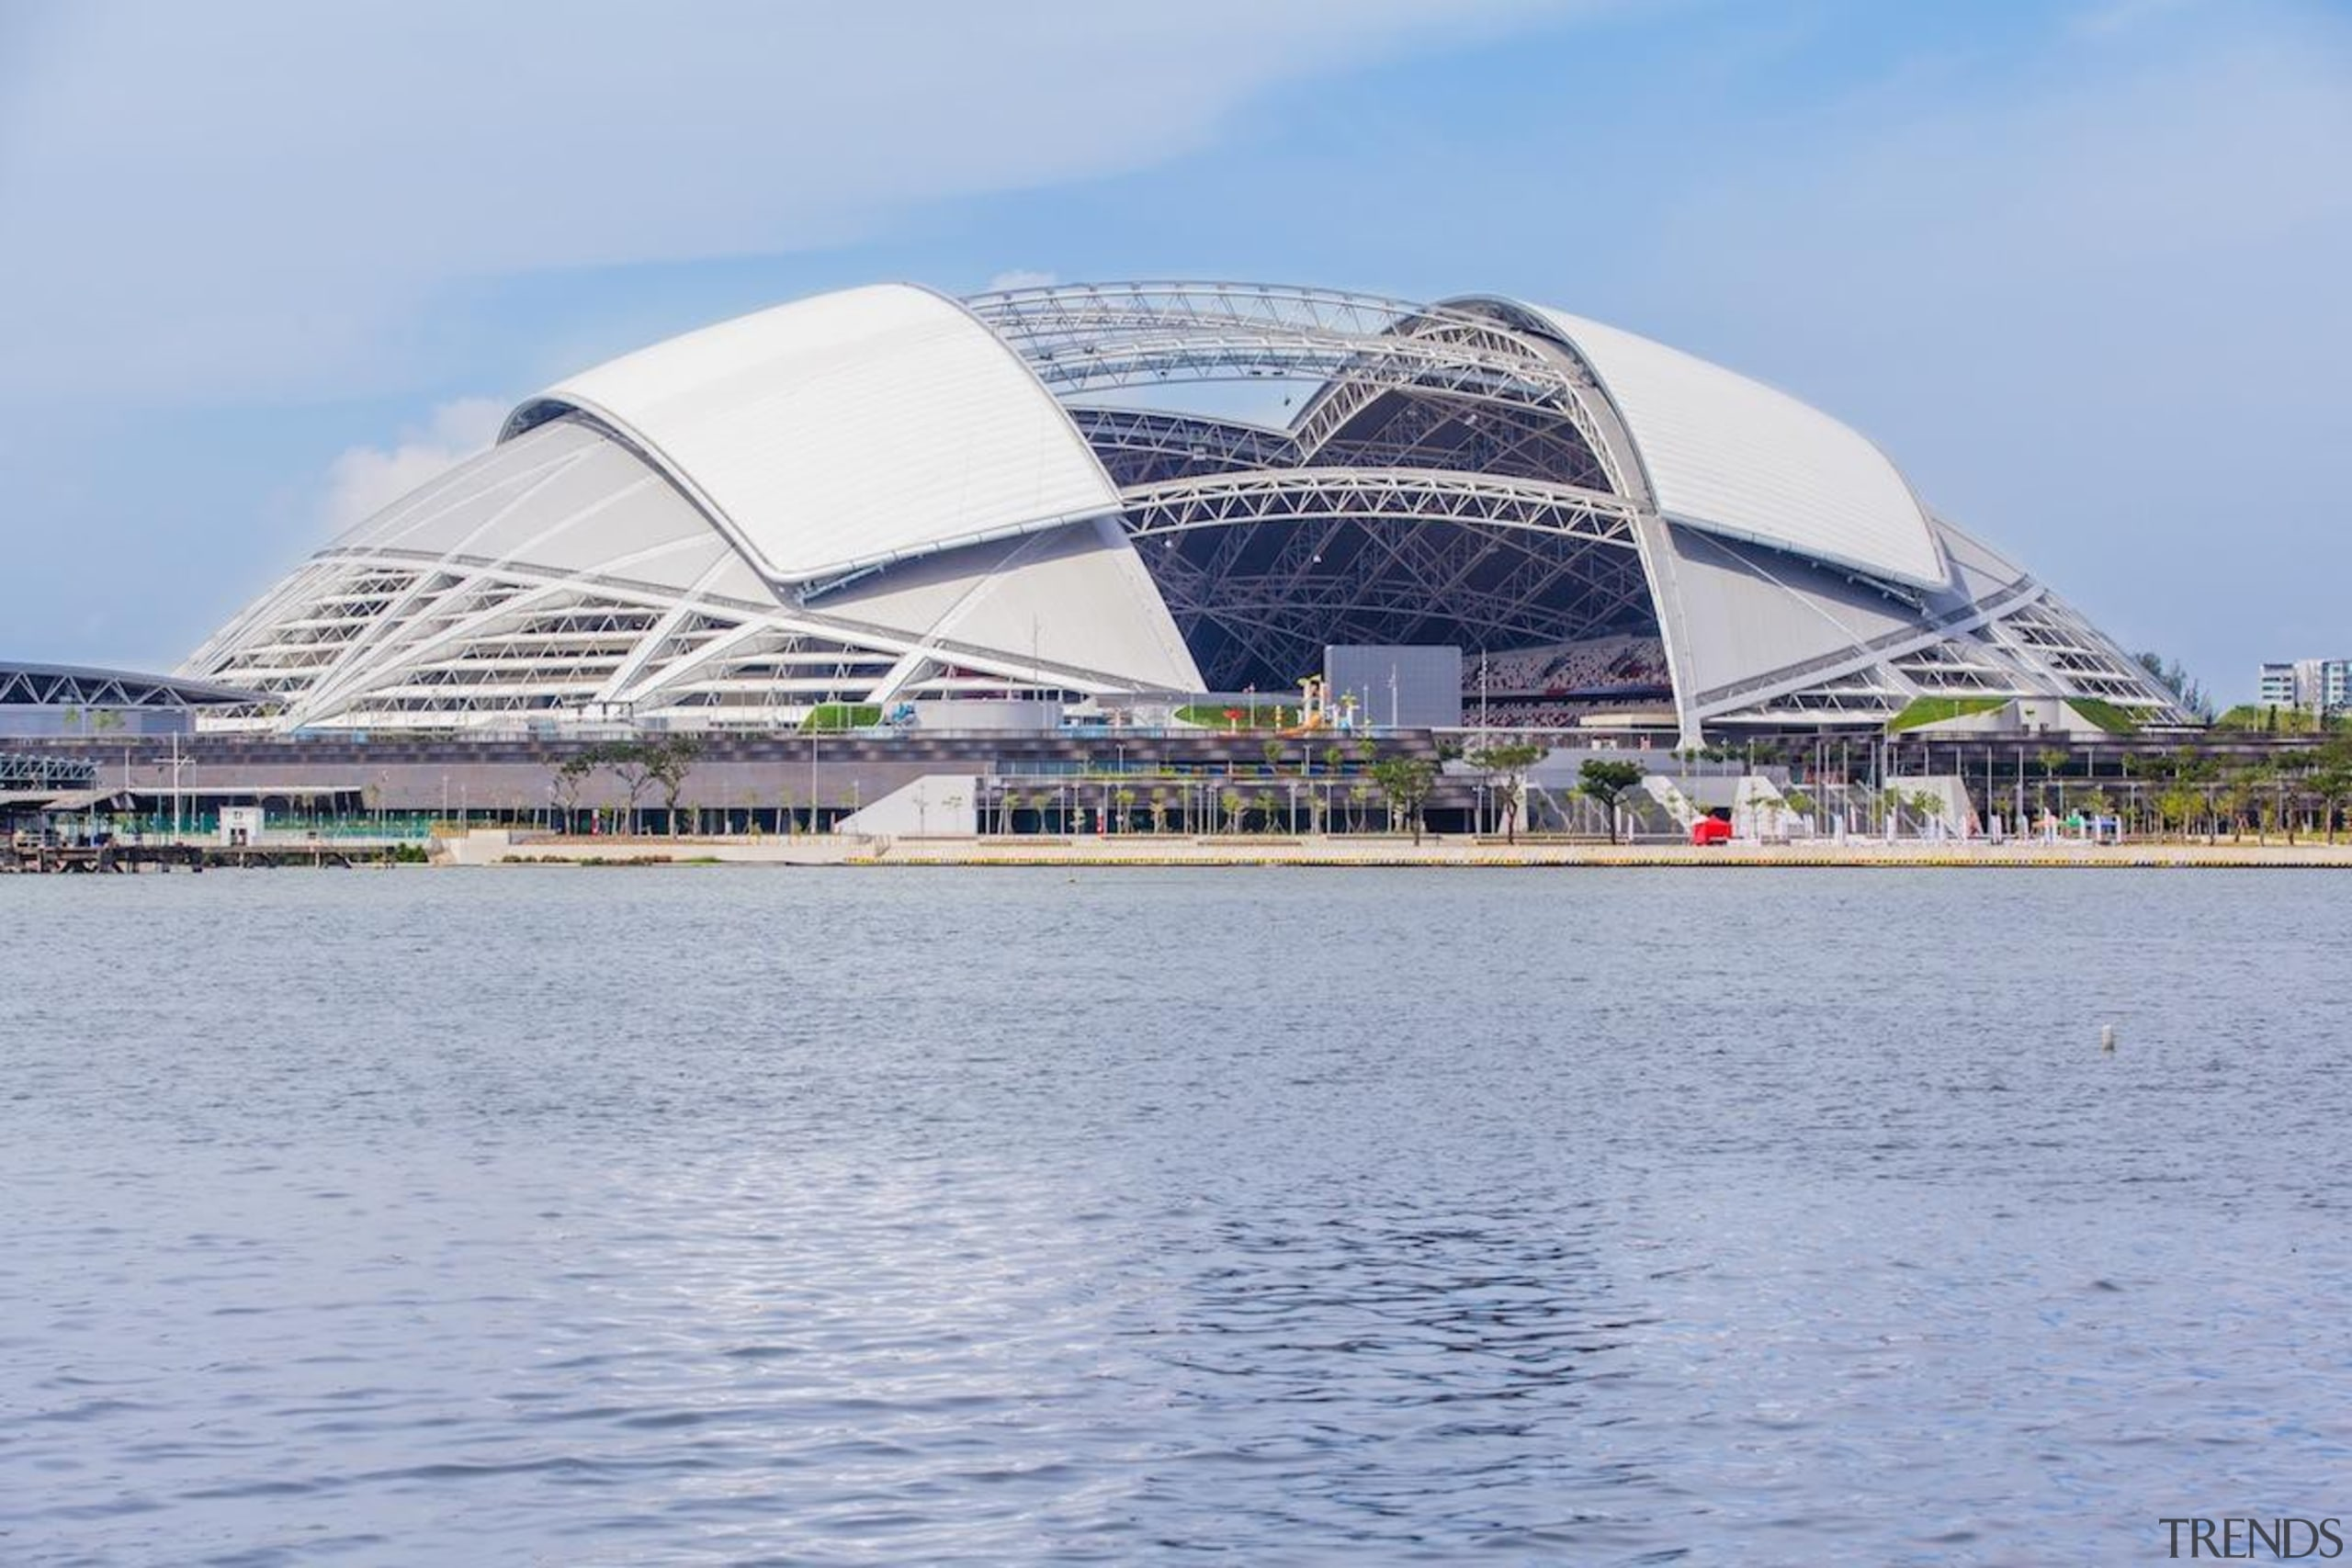 Singapore-based engineering company MHE-Demag provided the roof moving daytime, opera house, sky, sport venue, structure, waterway, teal